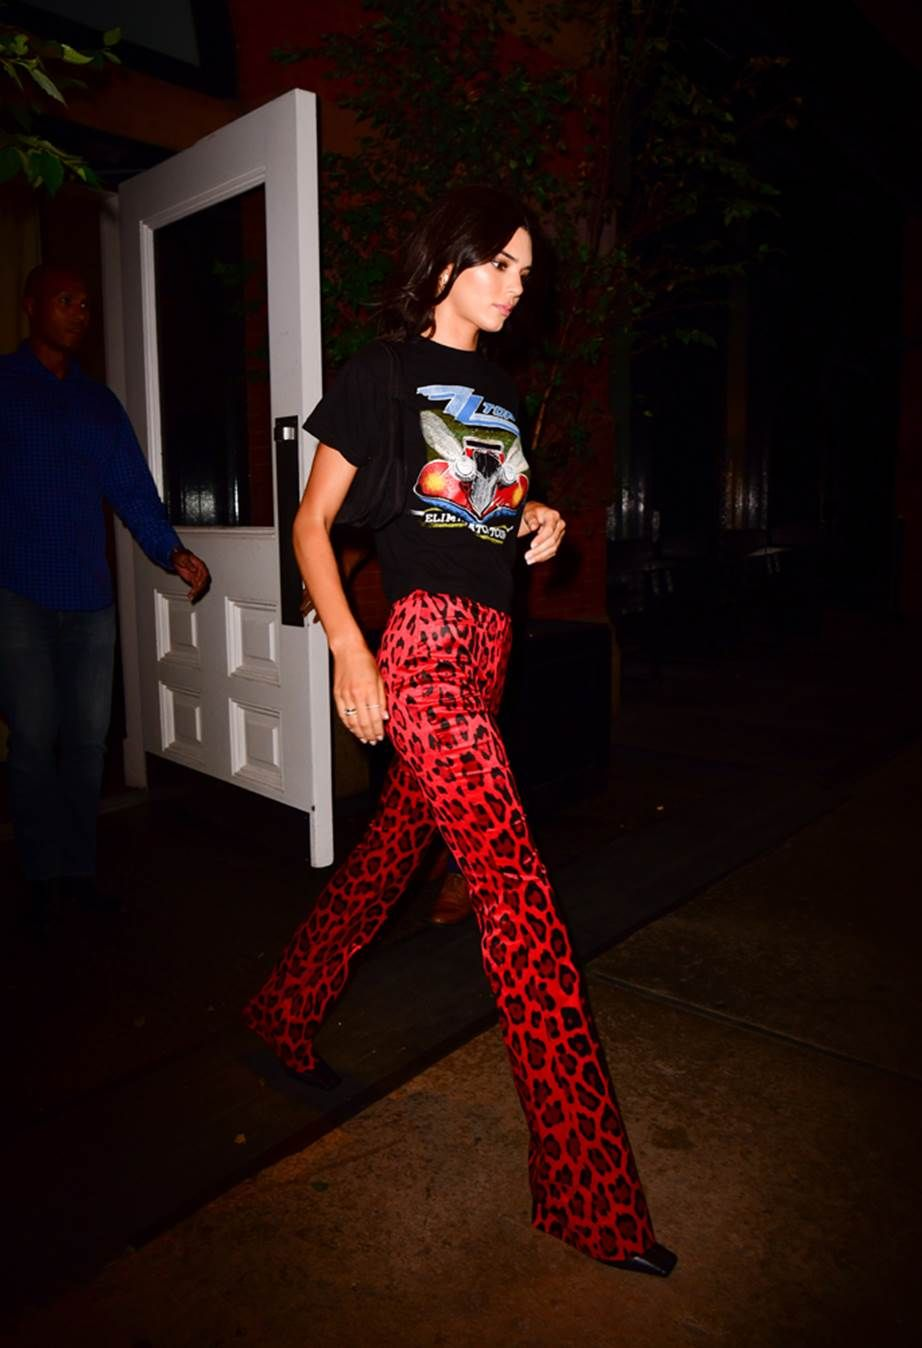 6200cefae4c3 Models Bella Hadid, Kendall Jenner and Gigi Hadid are dominating 2018 New  York Fashion Week, both on and off the runway. Here, everything they've  worn so ...